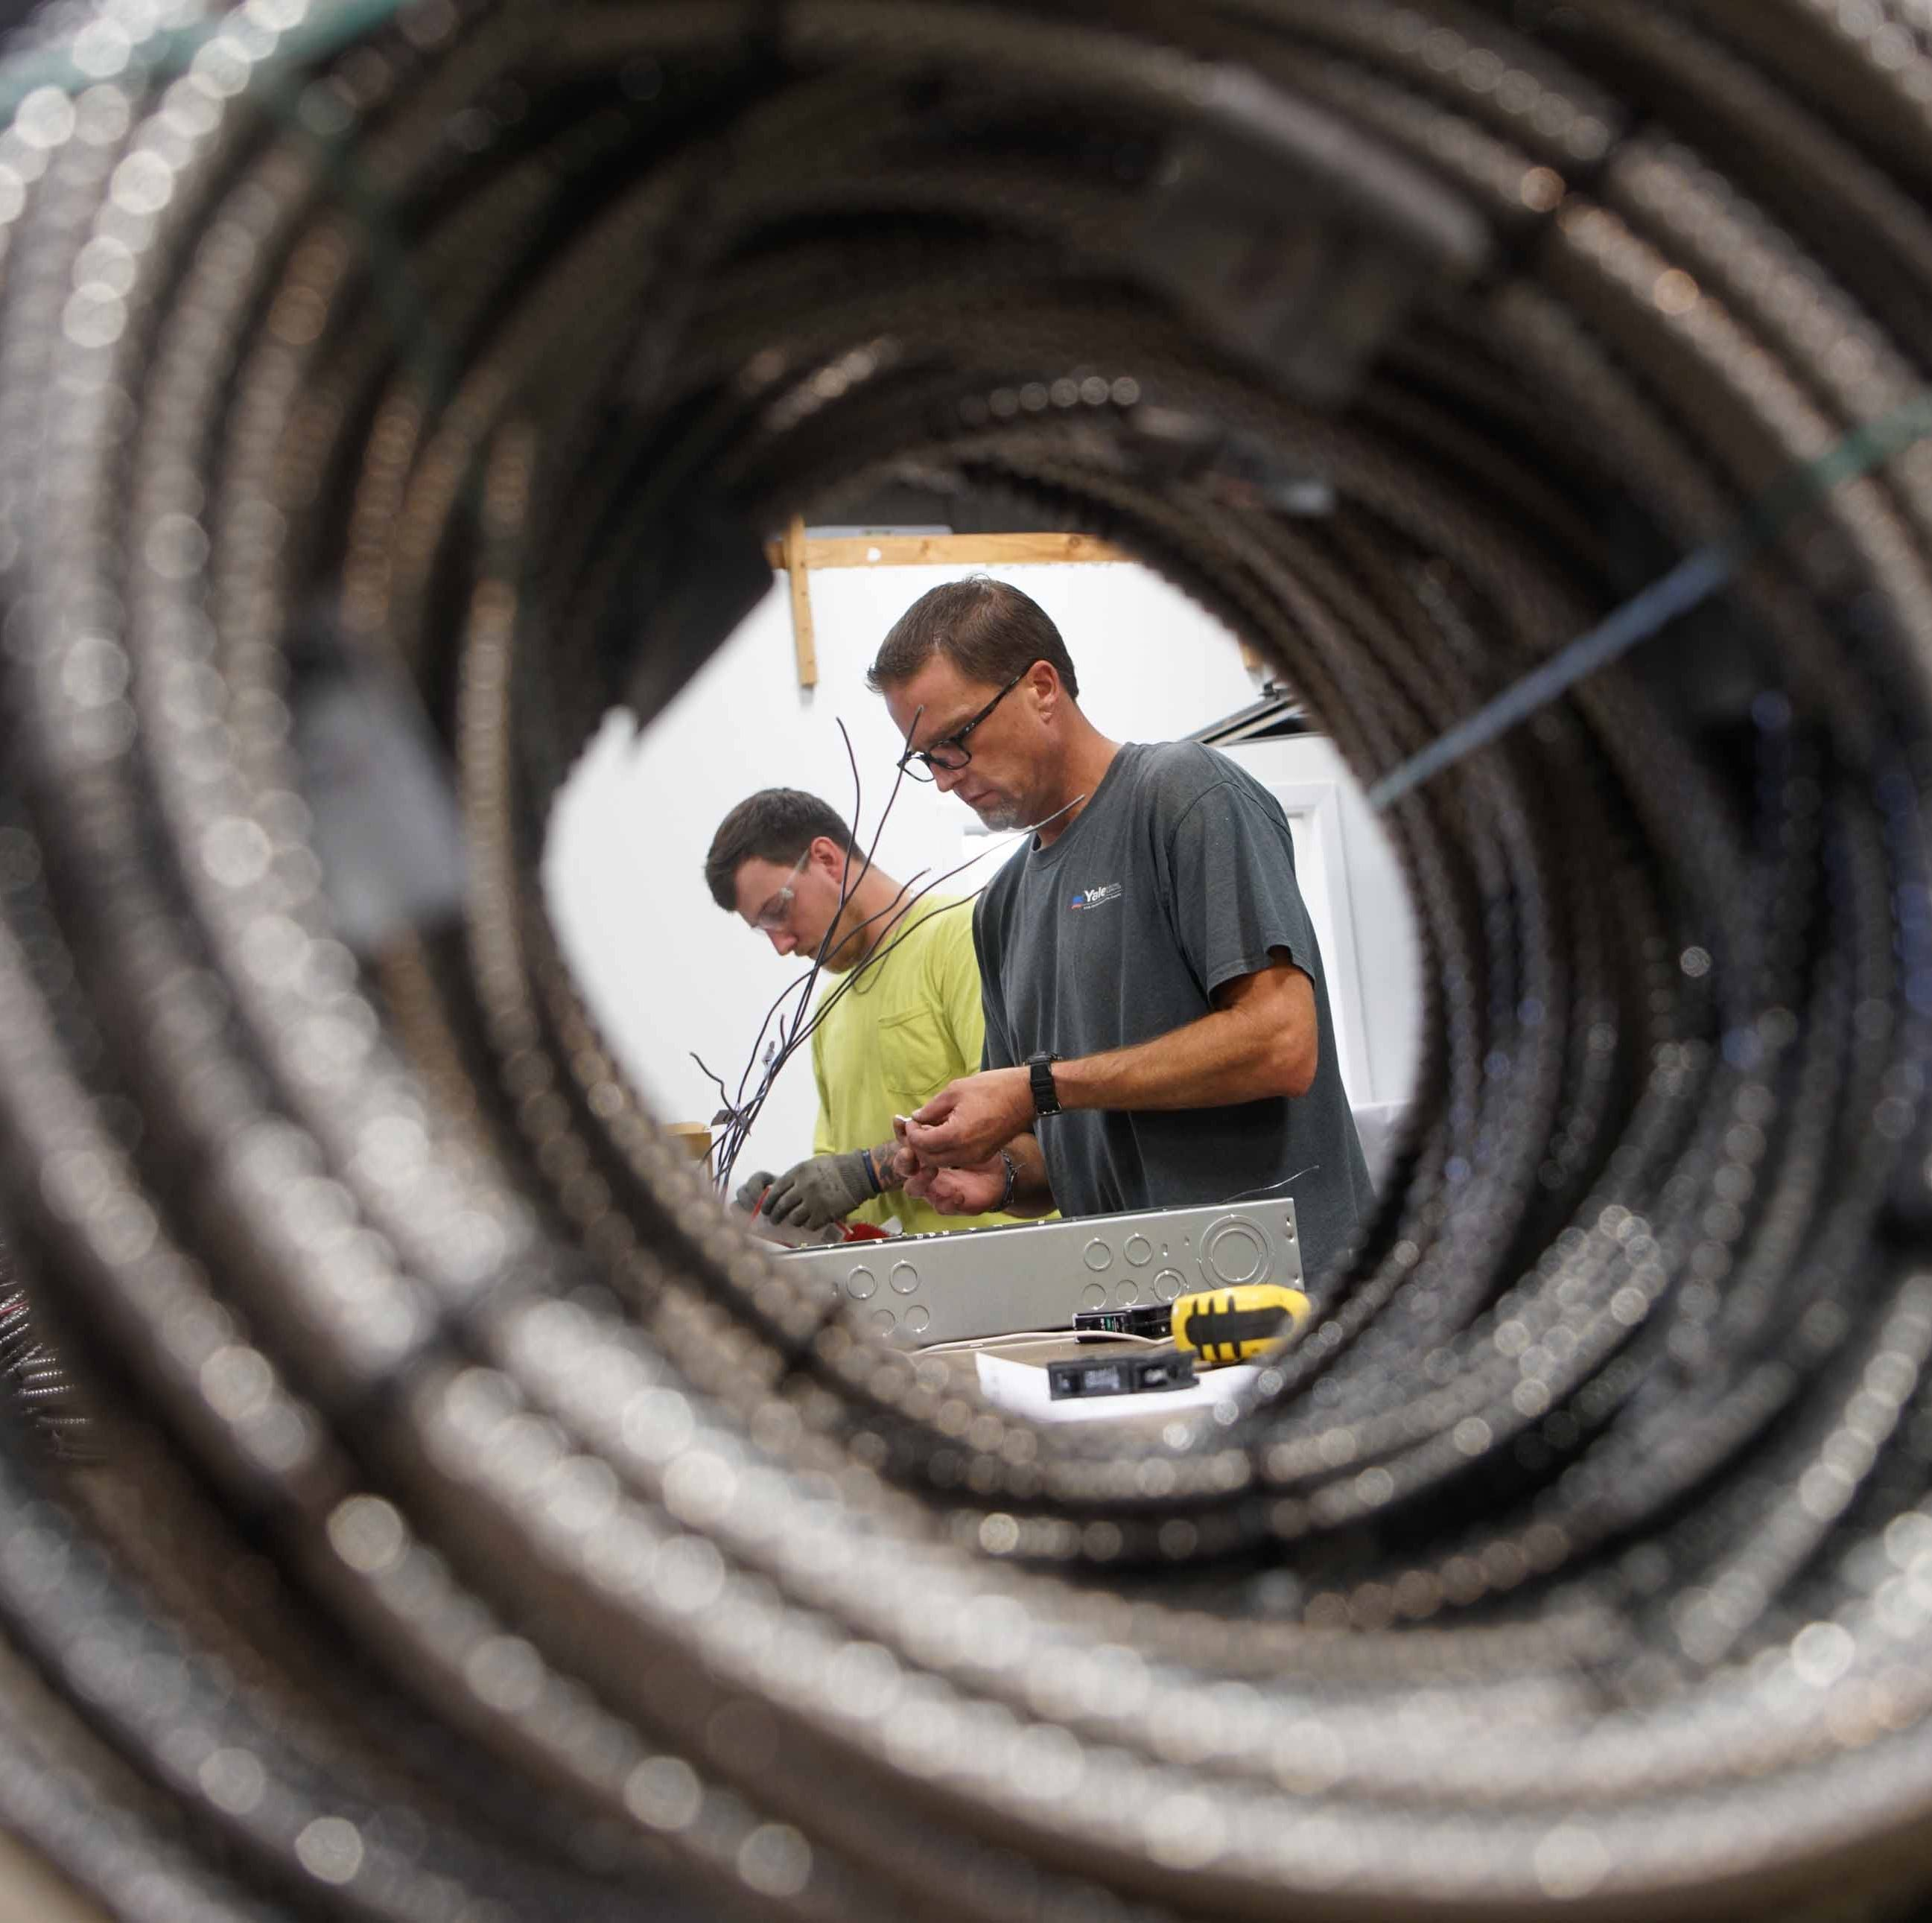 At Nickle Electrical Co., family-first approach earns company high marks